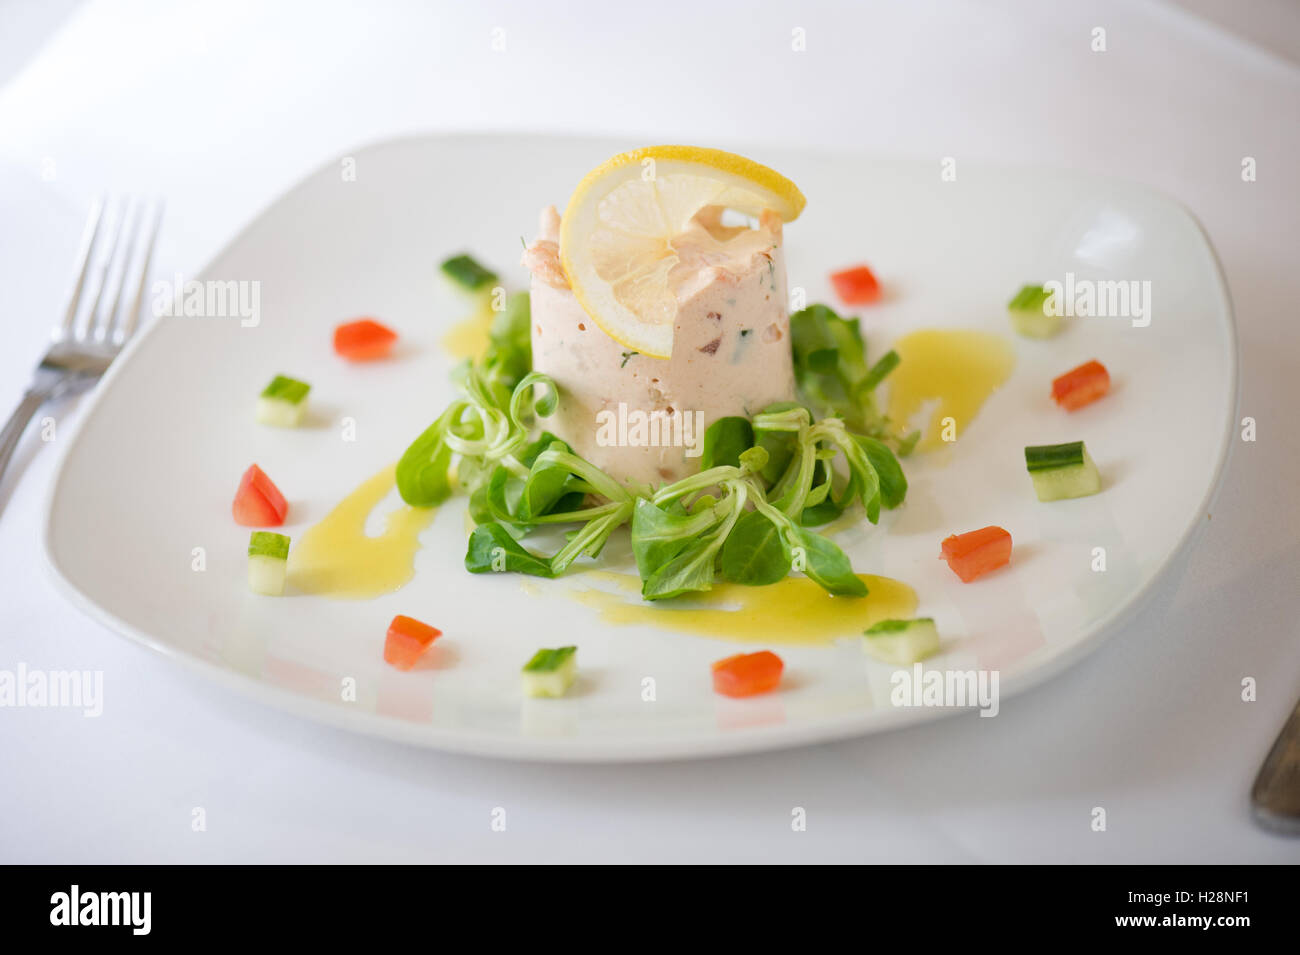 Light starter of mousse with salad - Stock Image